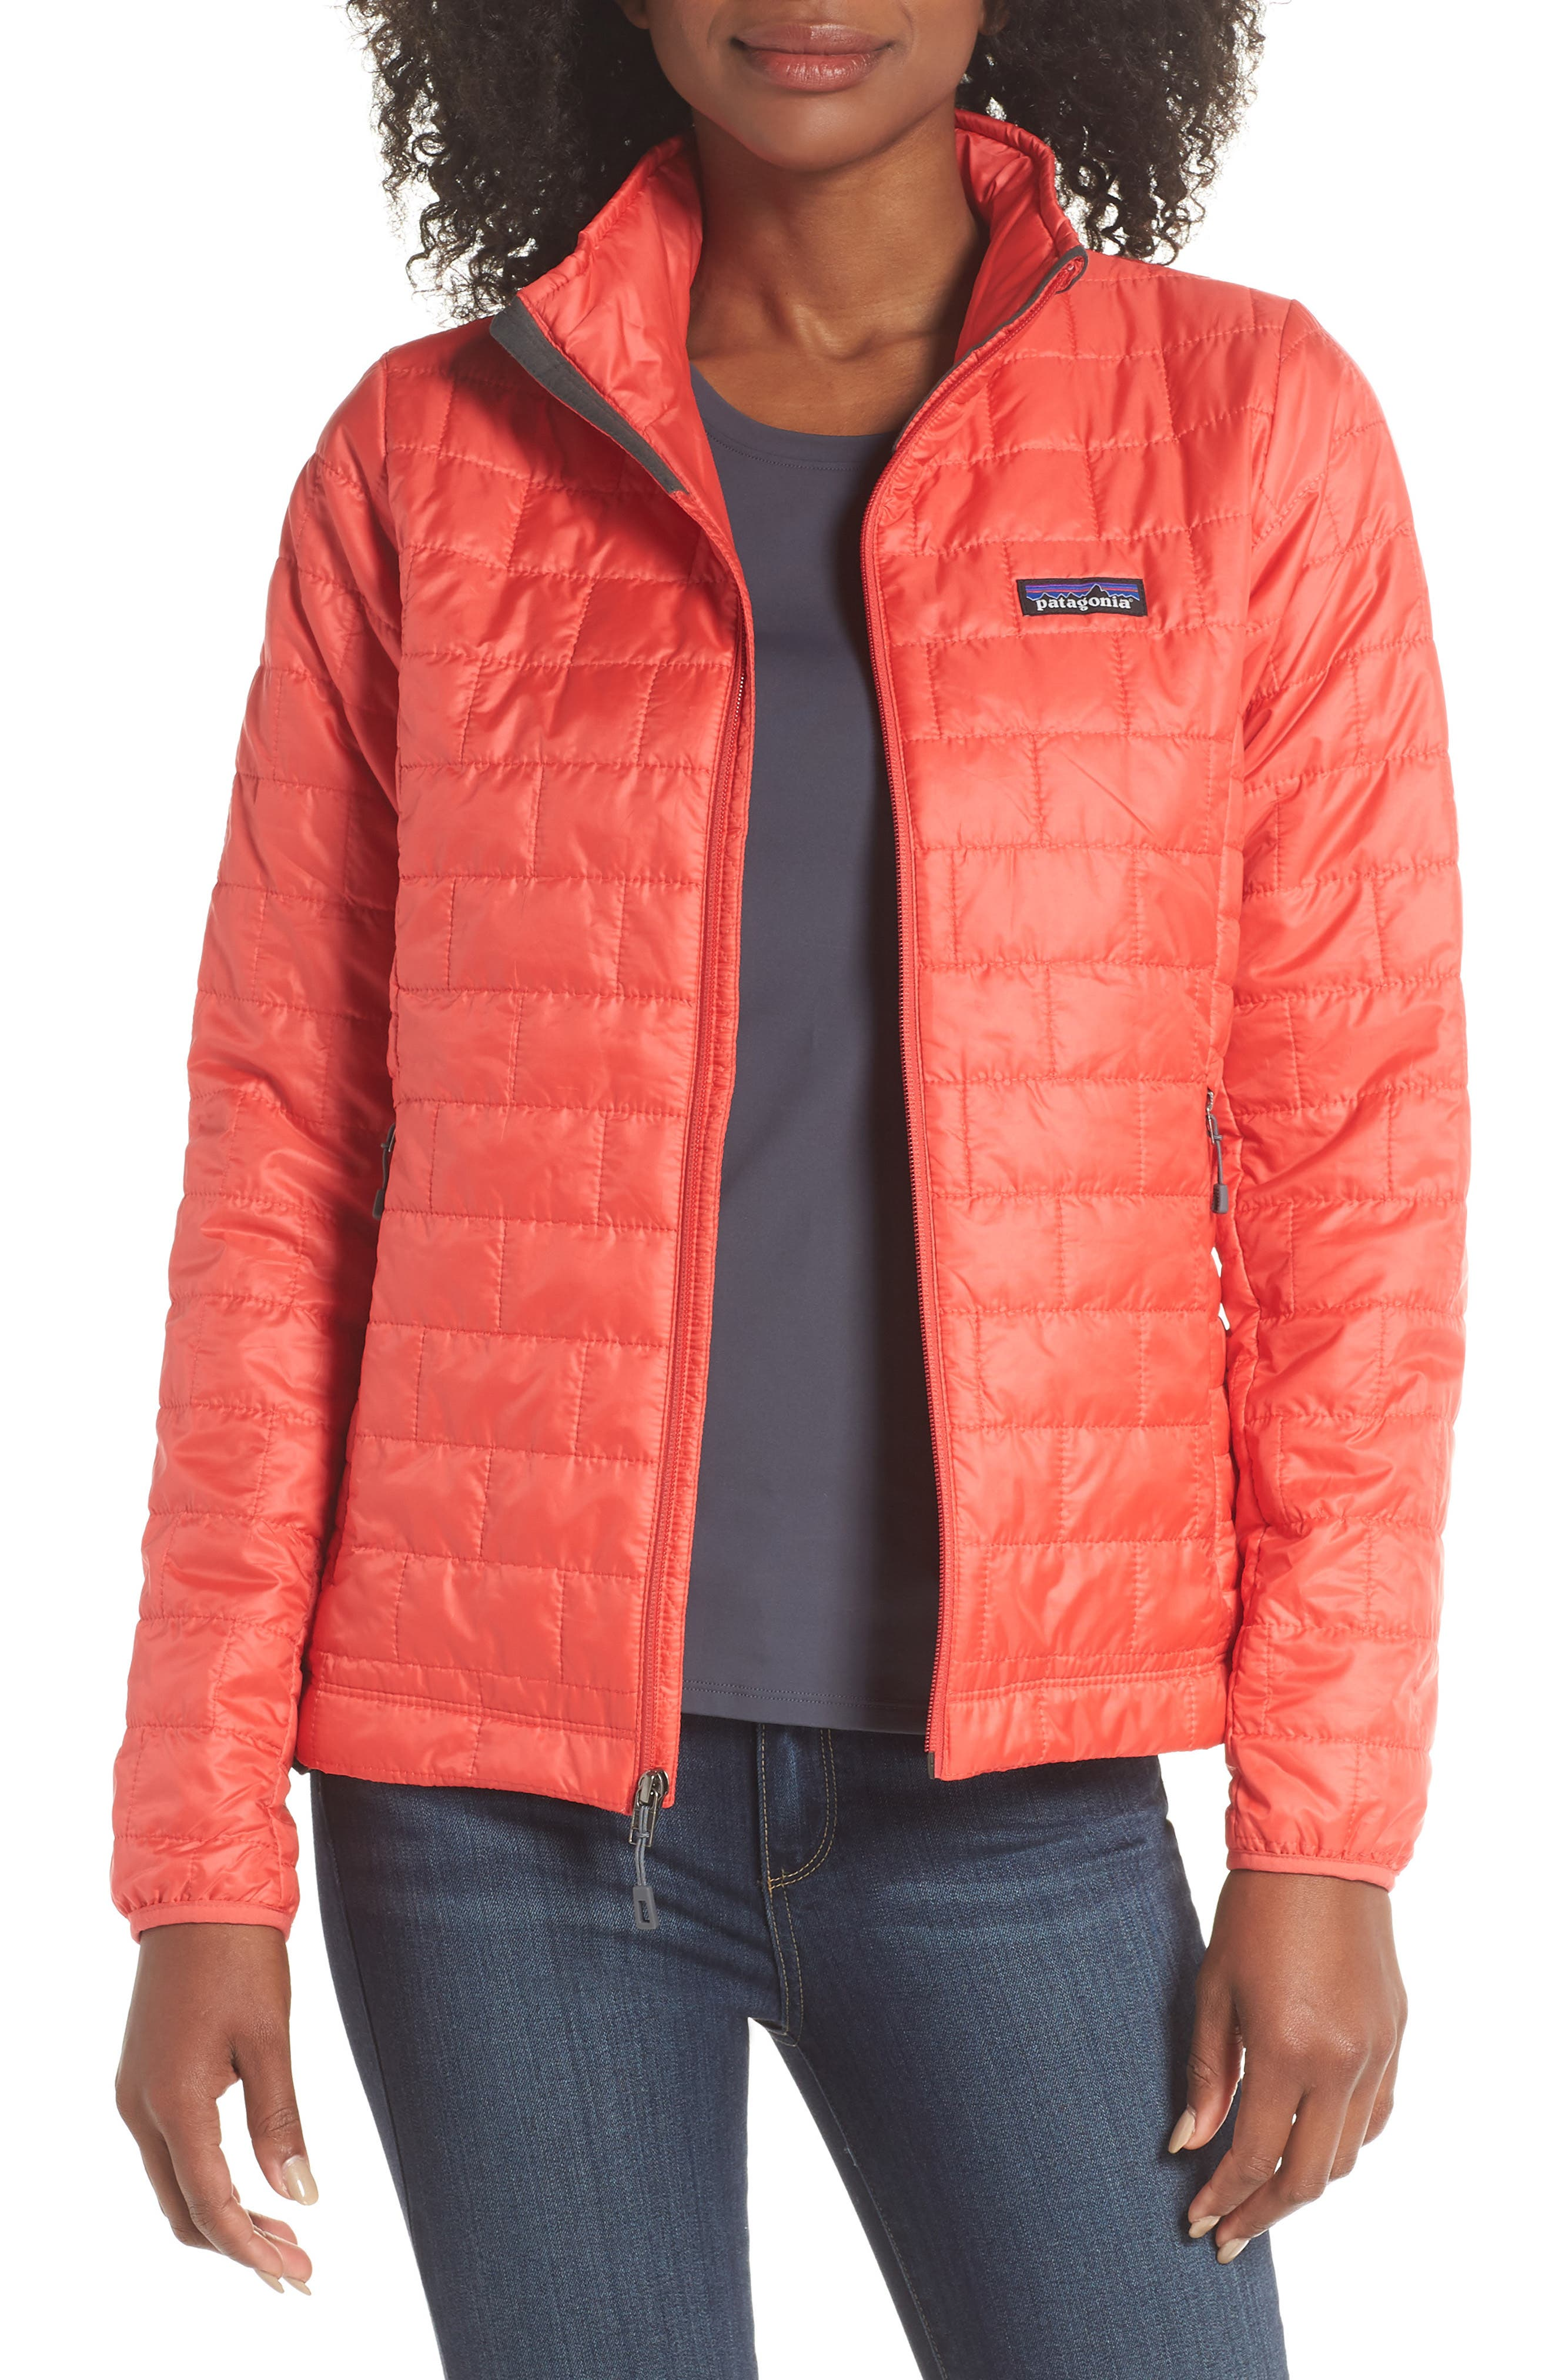 Patagonia Nano Puff Water Resistant Jacket, Red